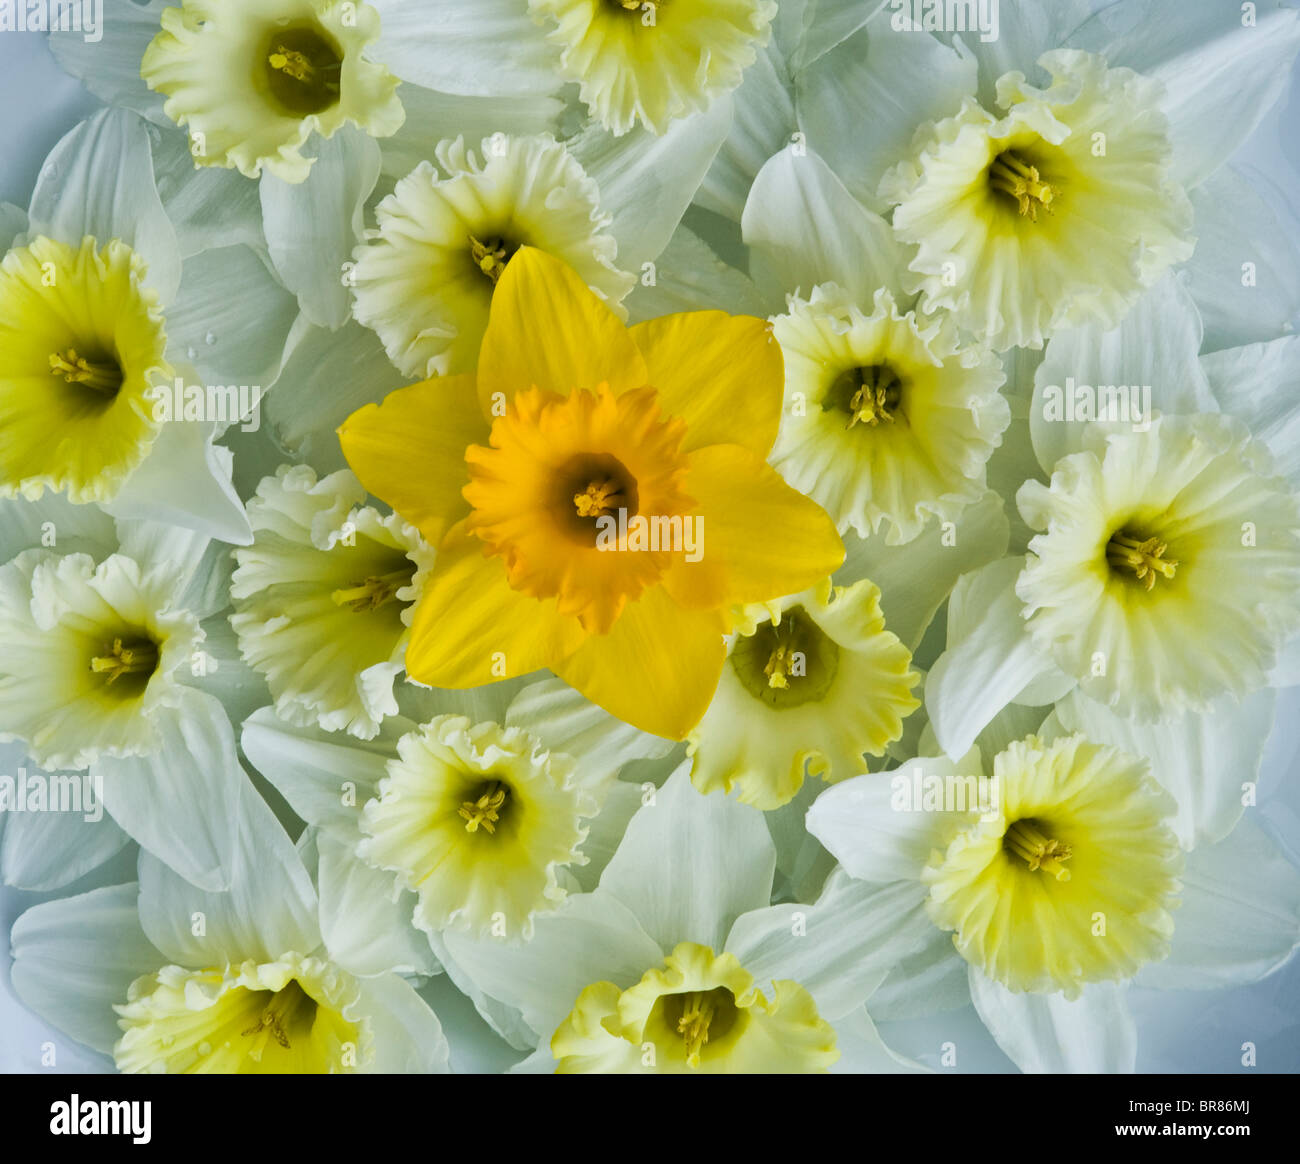 Close up Merging abstract pattern of spring daffodils bouquet of colorful yellow narcissus jonquils daffodil flowers, Stock Photo